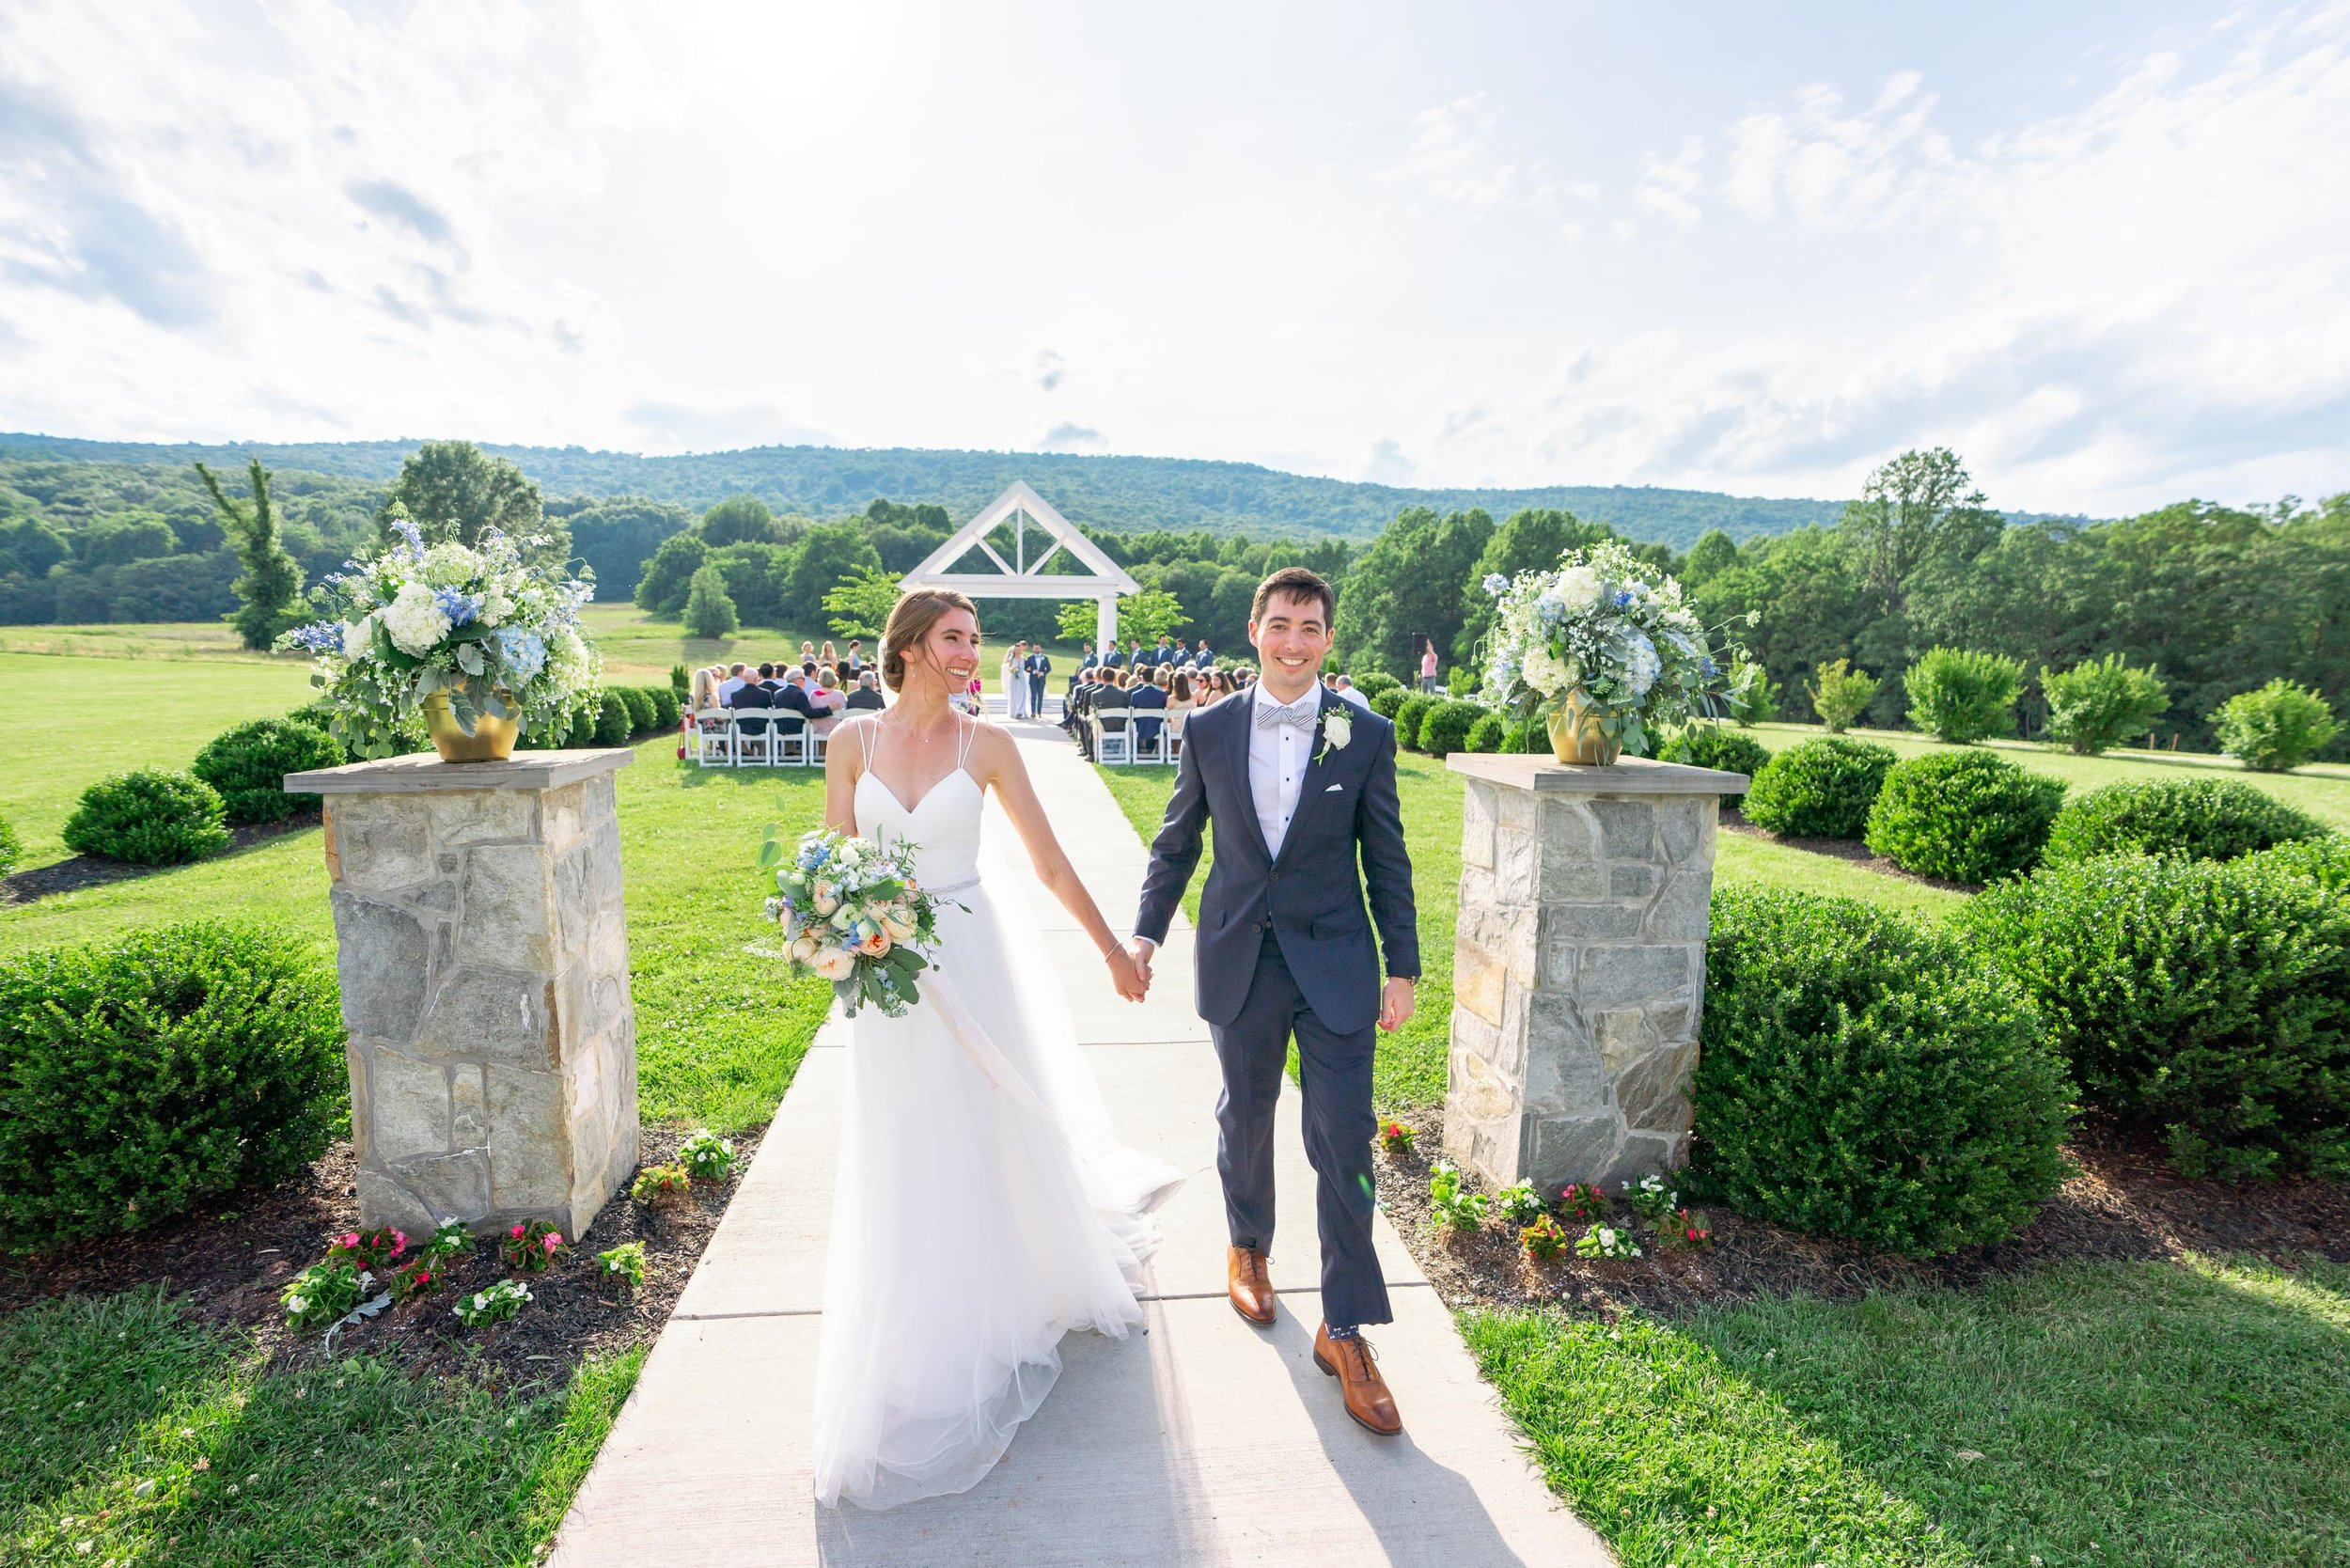 Bride and groom in front of ceremony site and sugarloaf at Springfield Manor winery and distillery